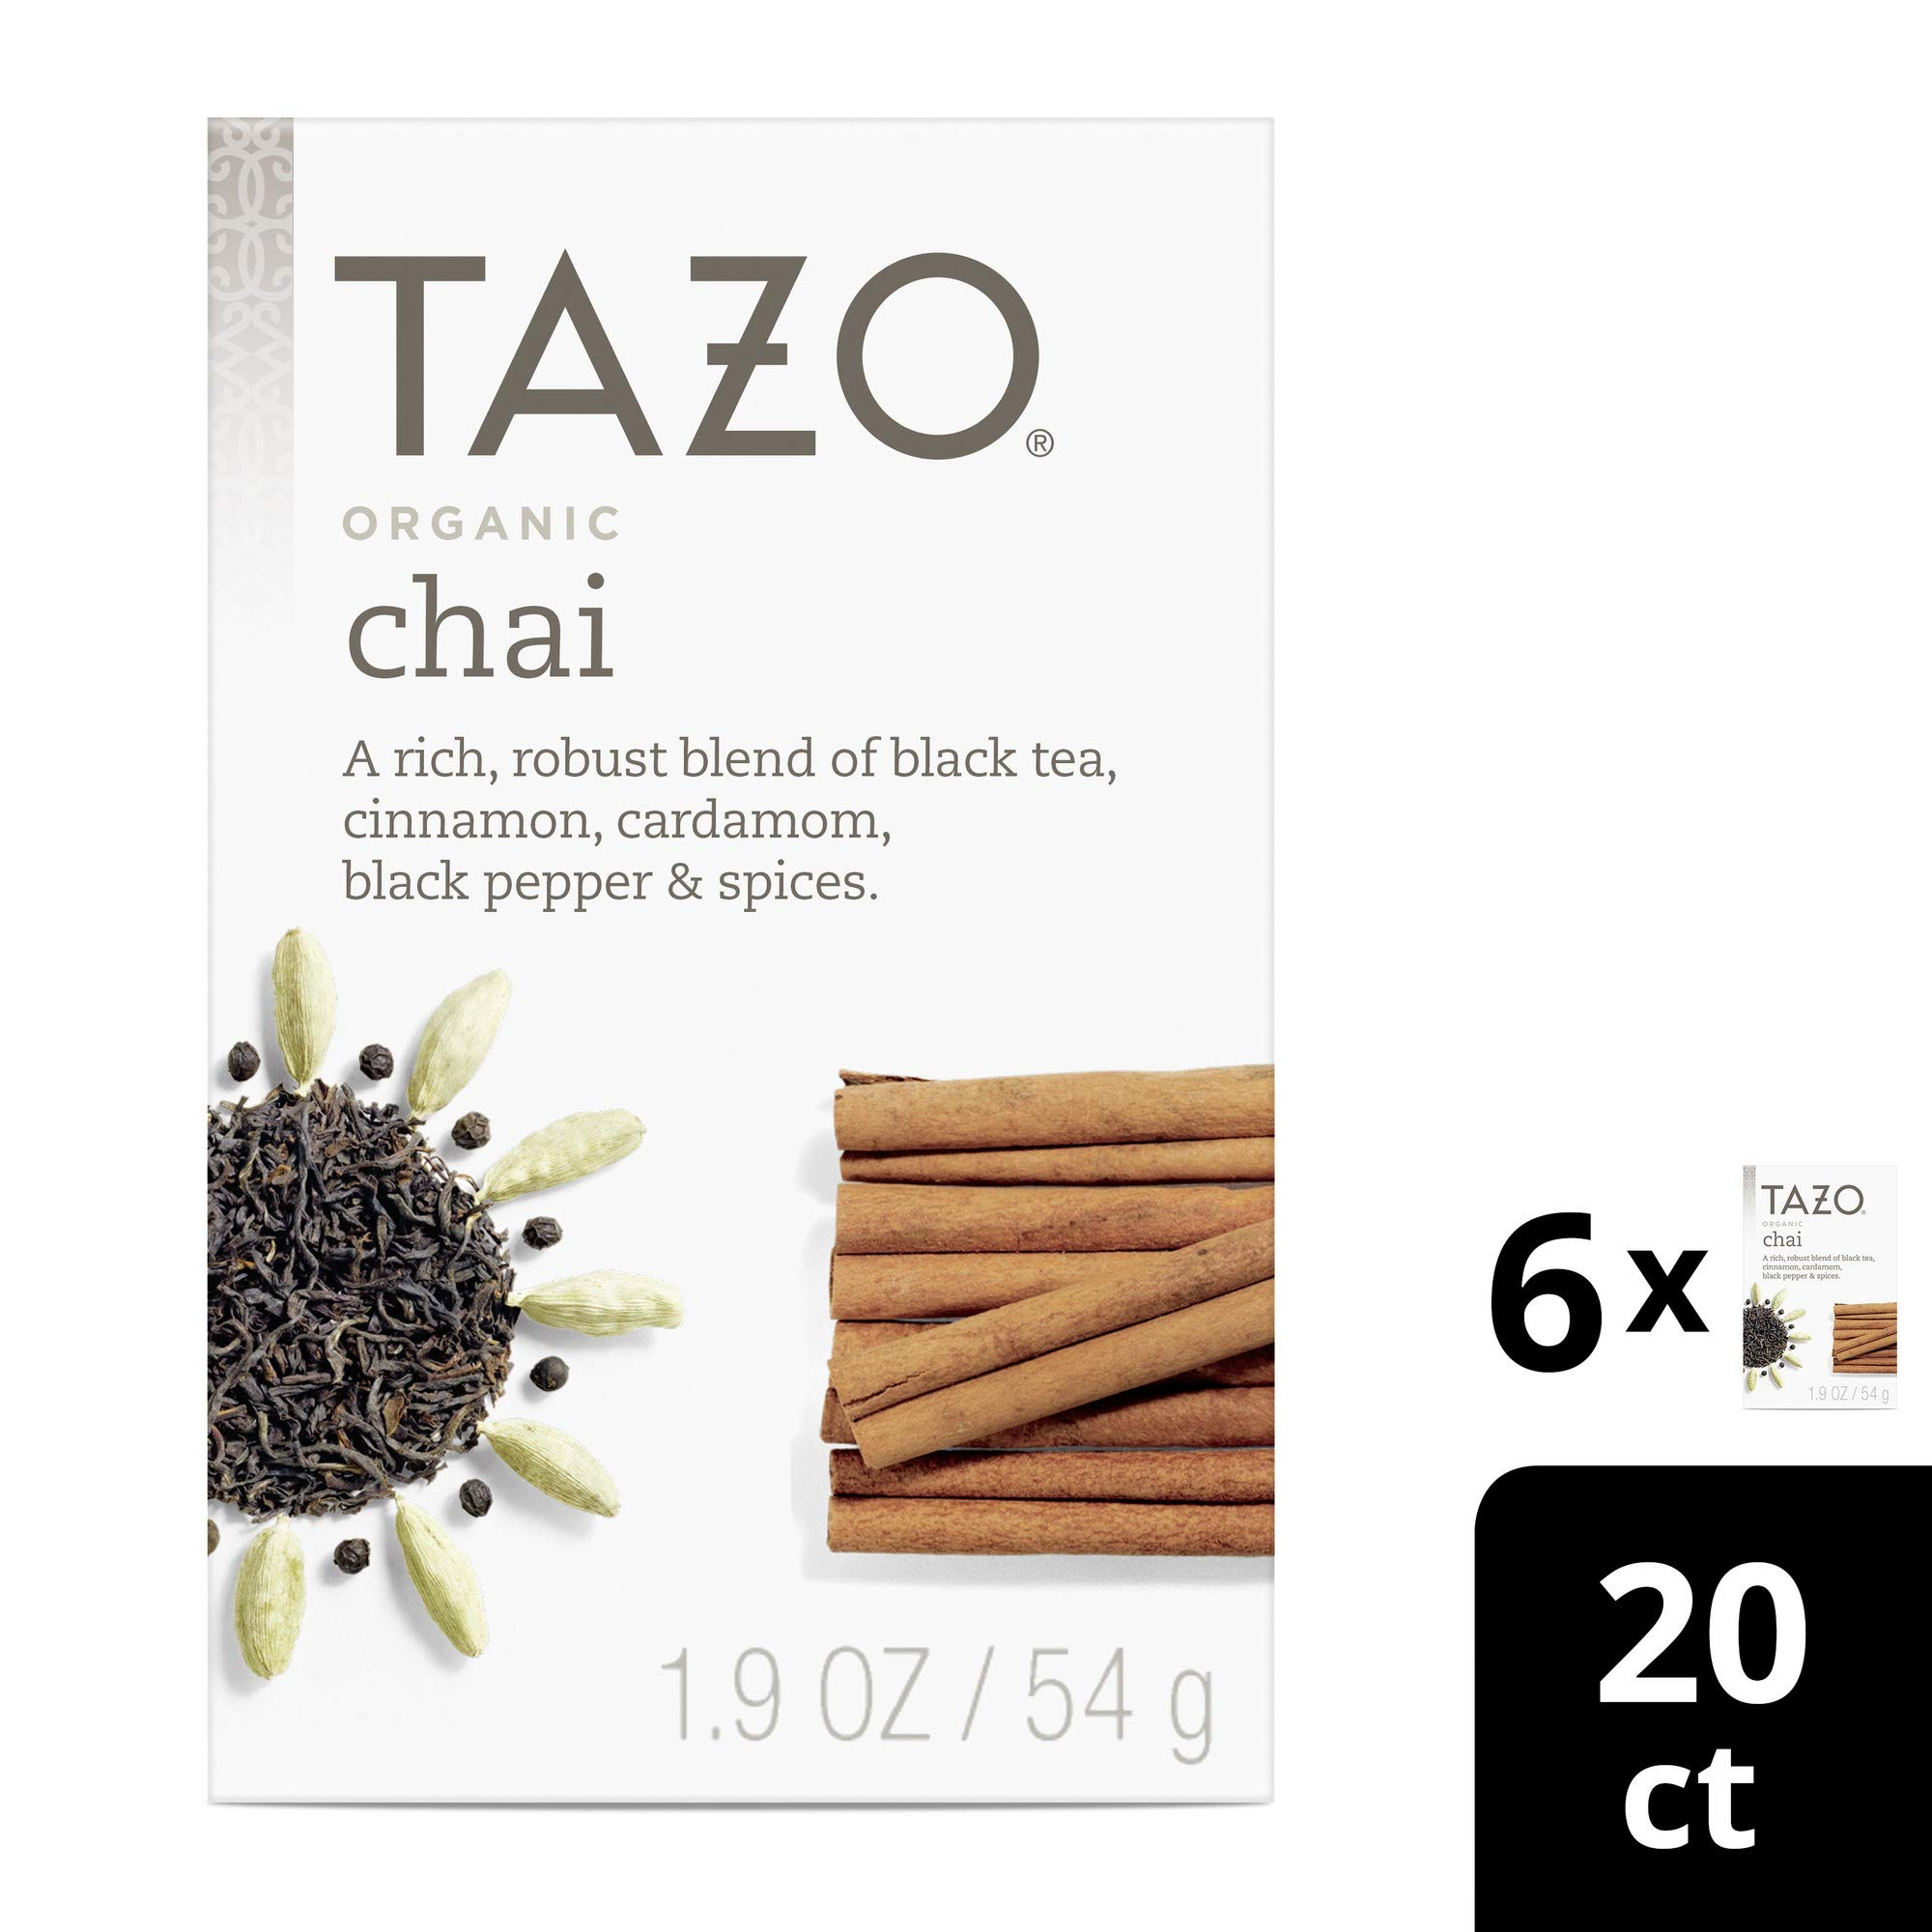 Tazo Organic Chai Black Tea Filterbags, 20 Count (Pack of 6) by TAZO